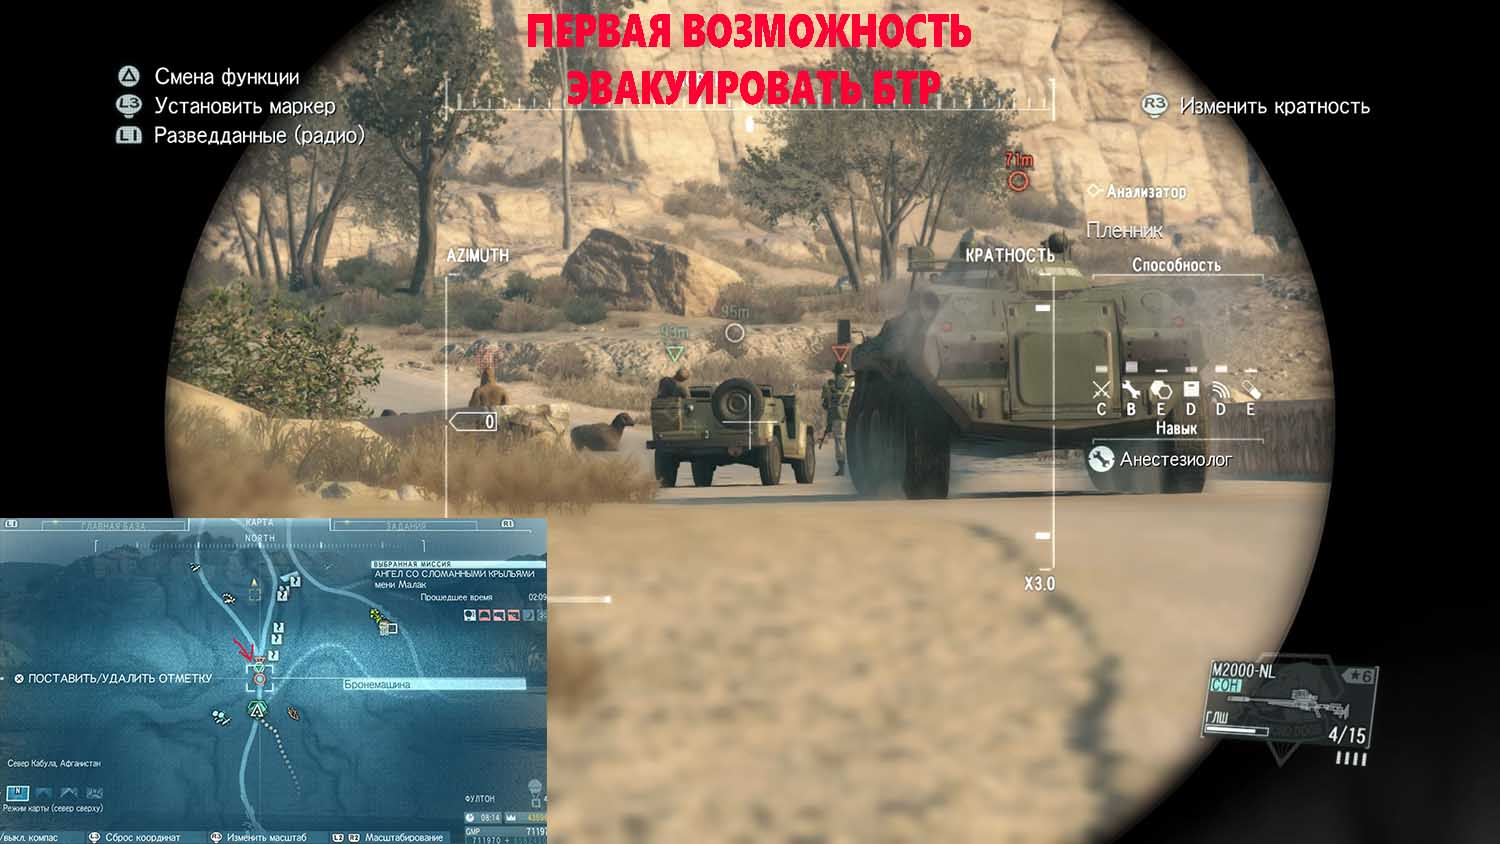 Metal Gear Solid V: The Phantom Pain Бронемашина сопровождения эвакуирована